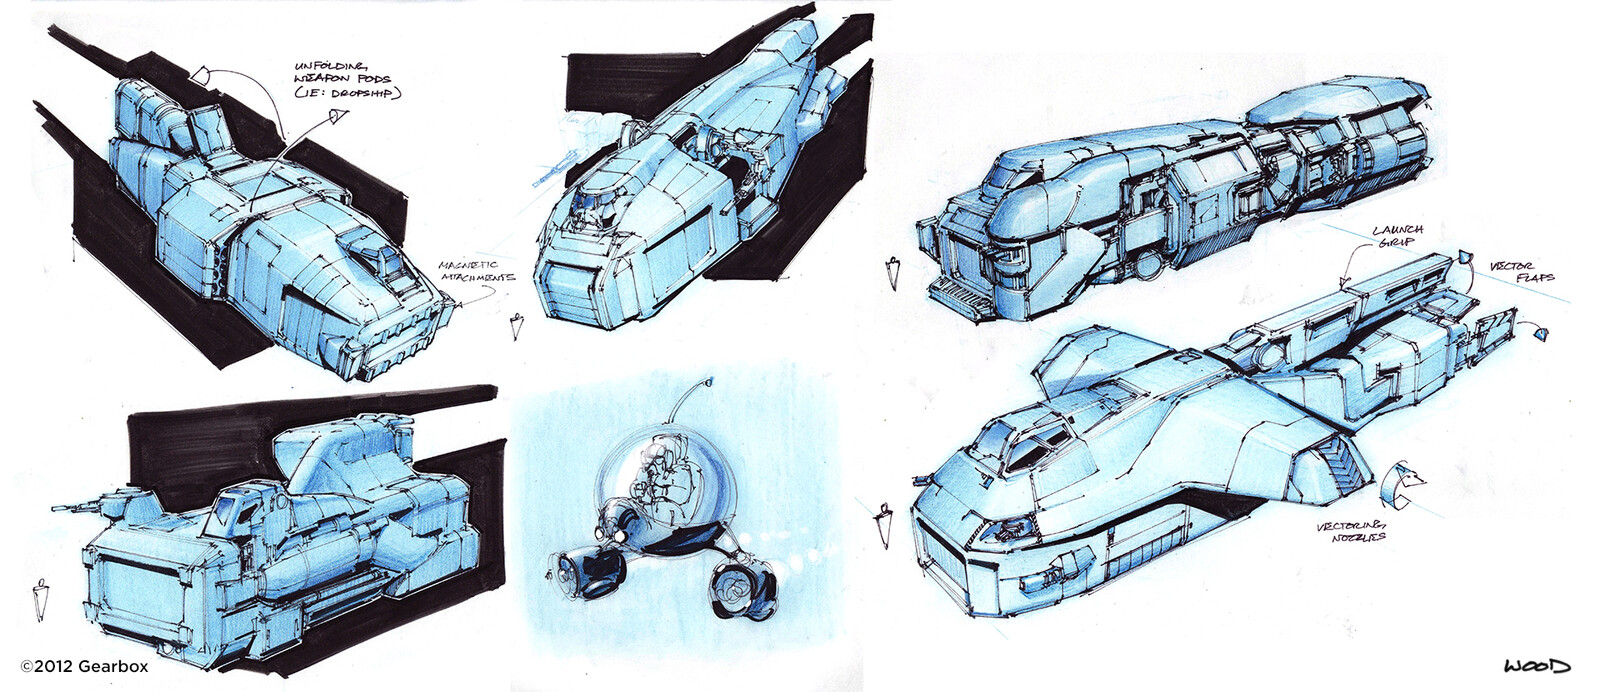 Thumbnails of a colonial marine deep-space boarding ship